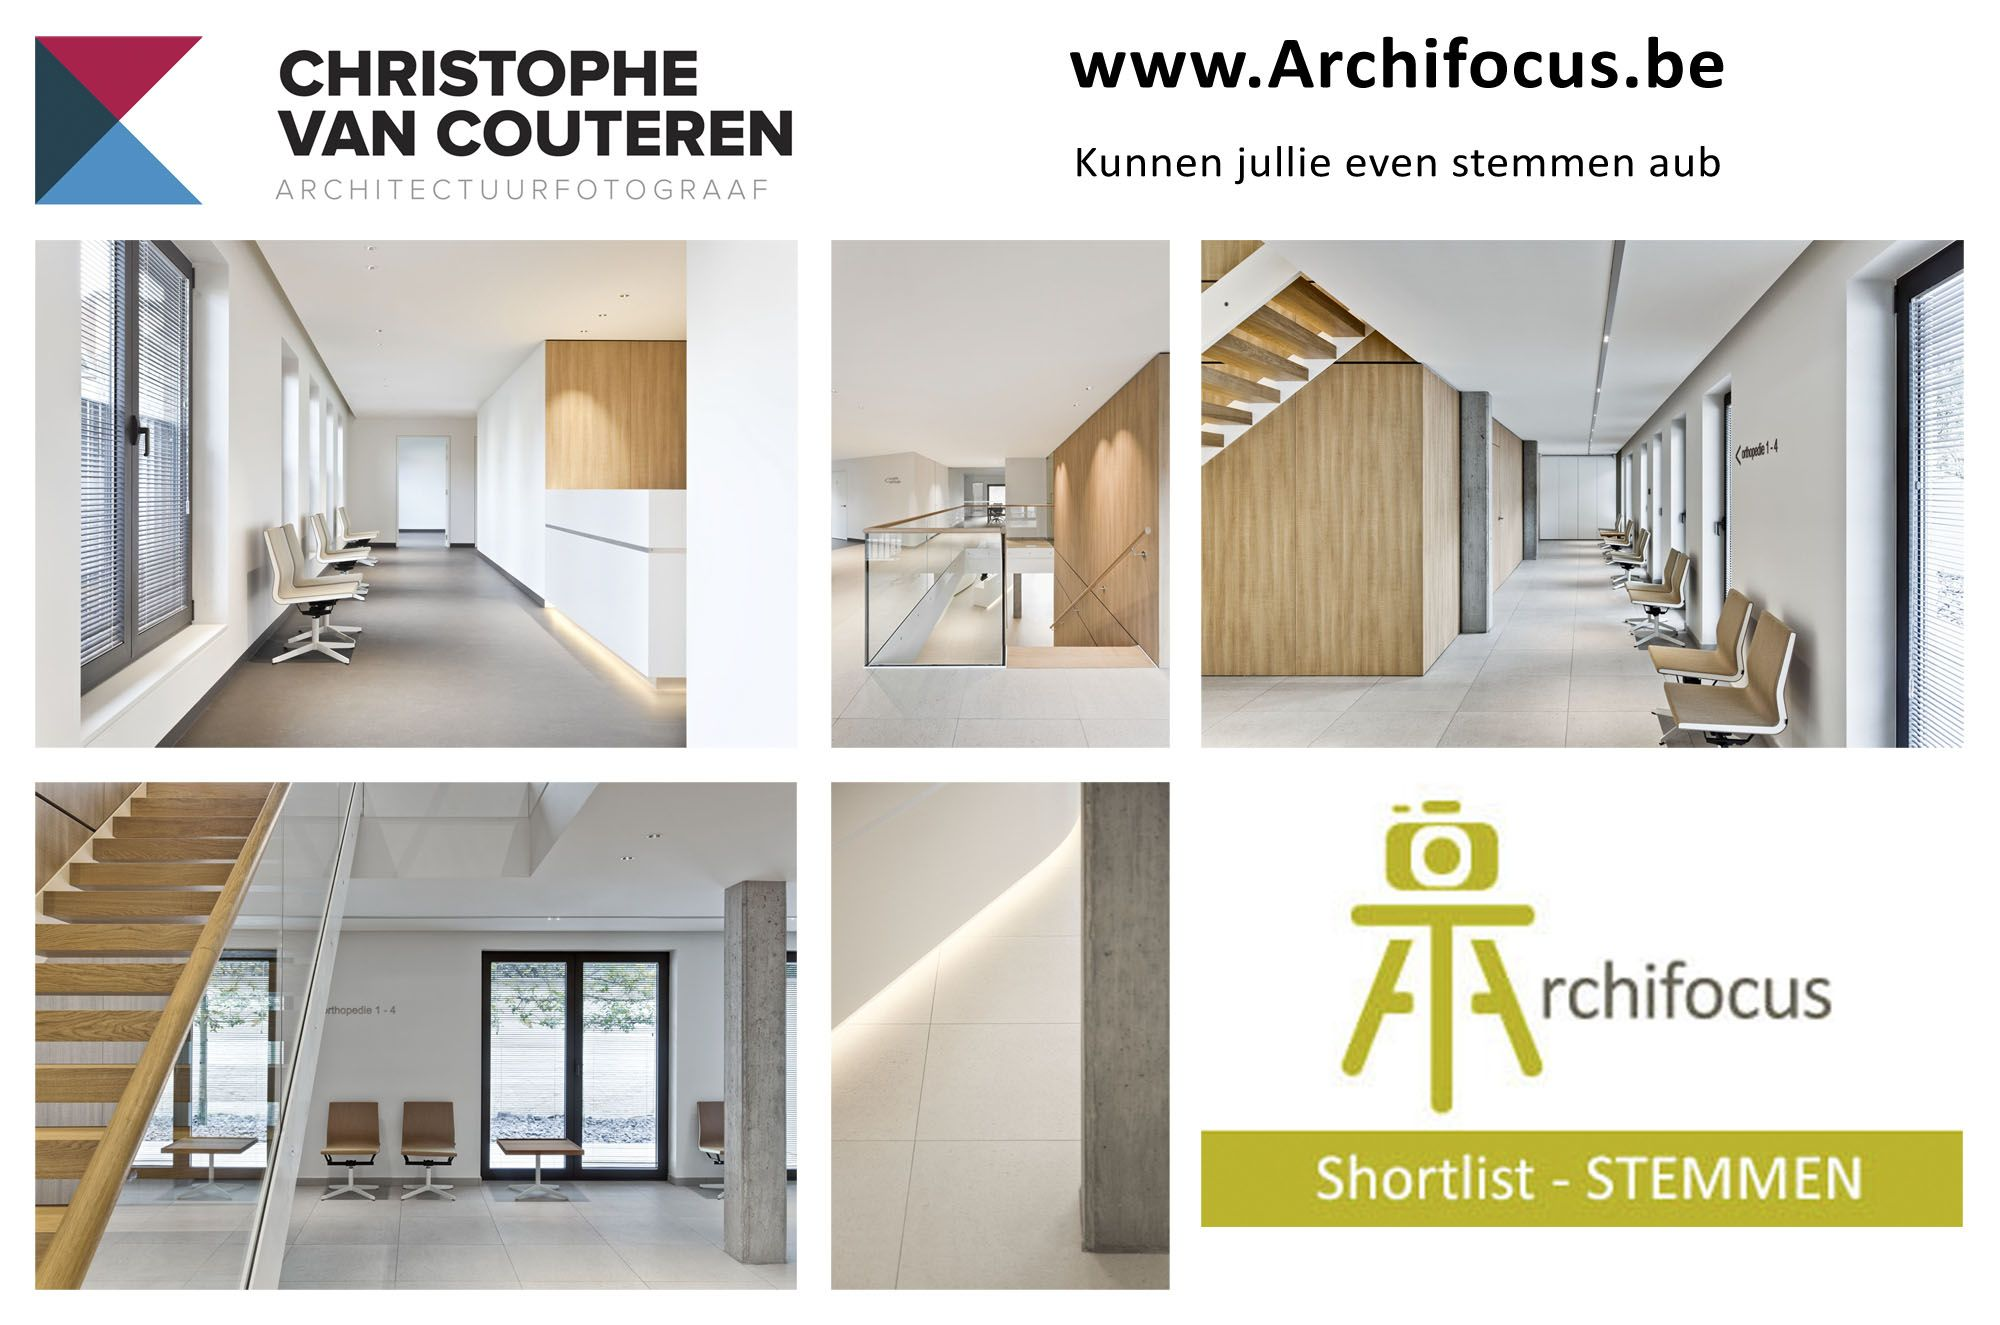 Please vote for me  www.archifocus.be @architecturabe